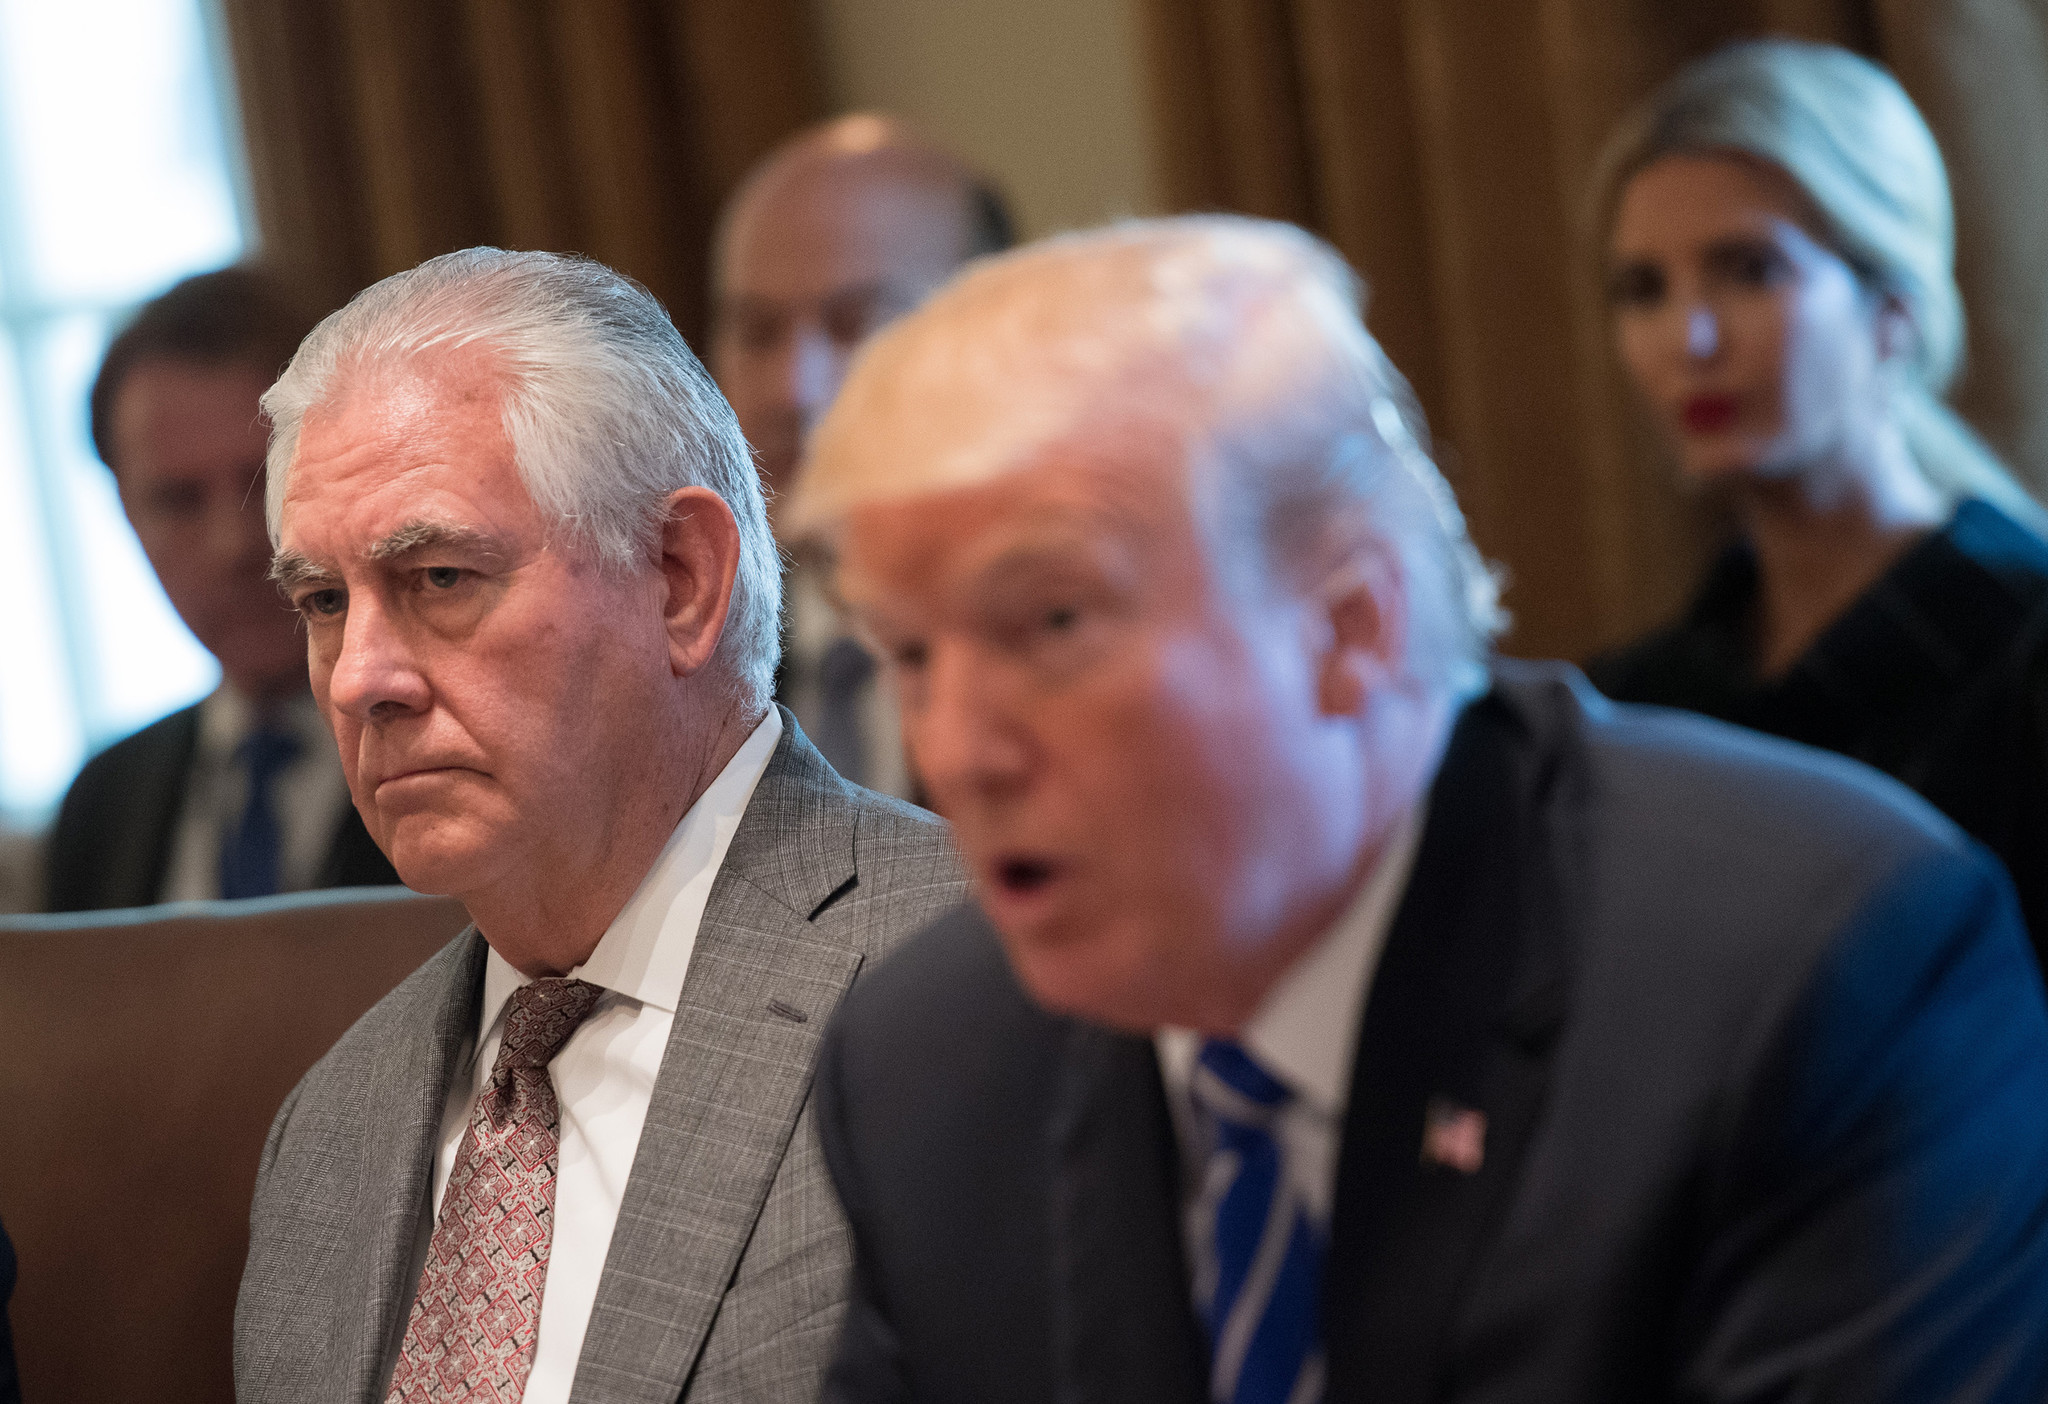 Trump allies say Tillerson has 'not learned his lesson' and cannot continue in job for long